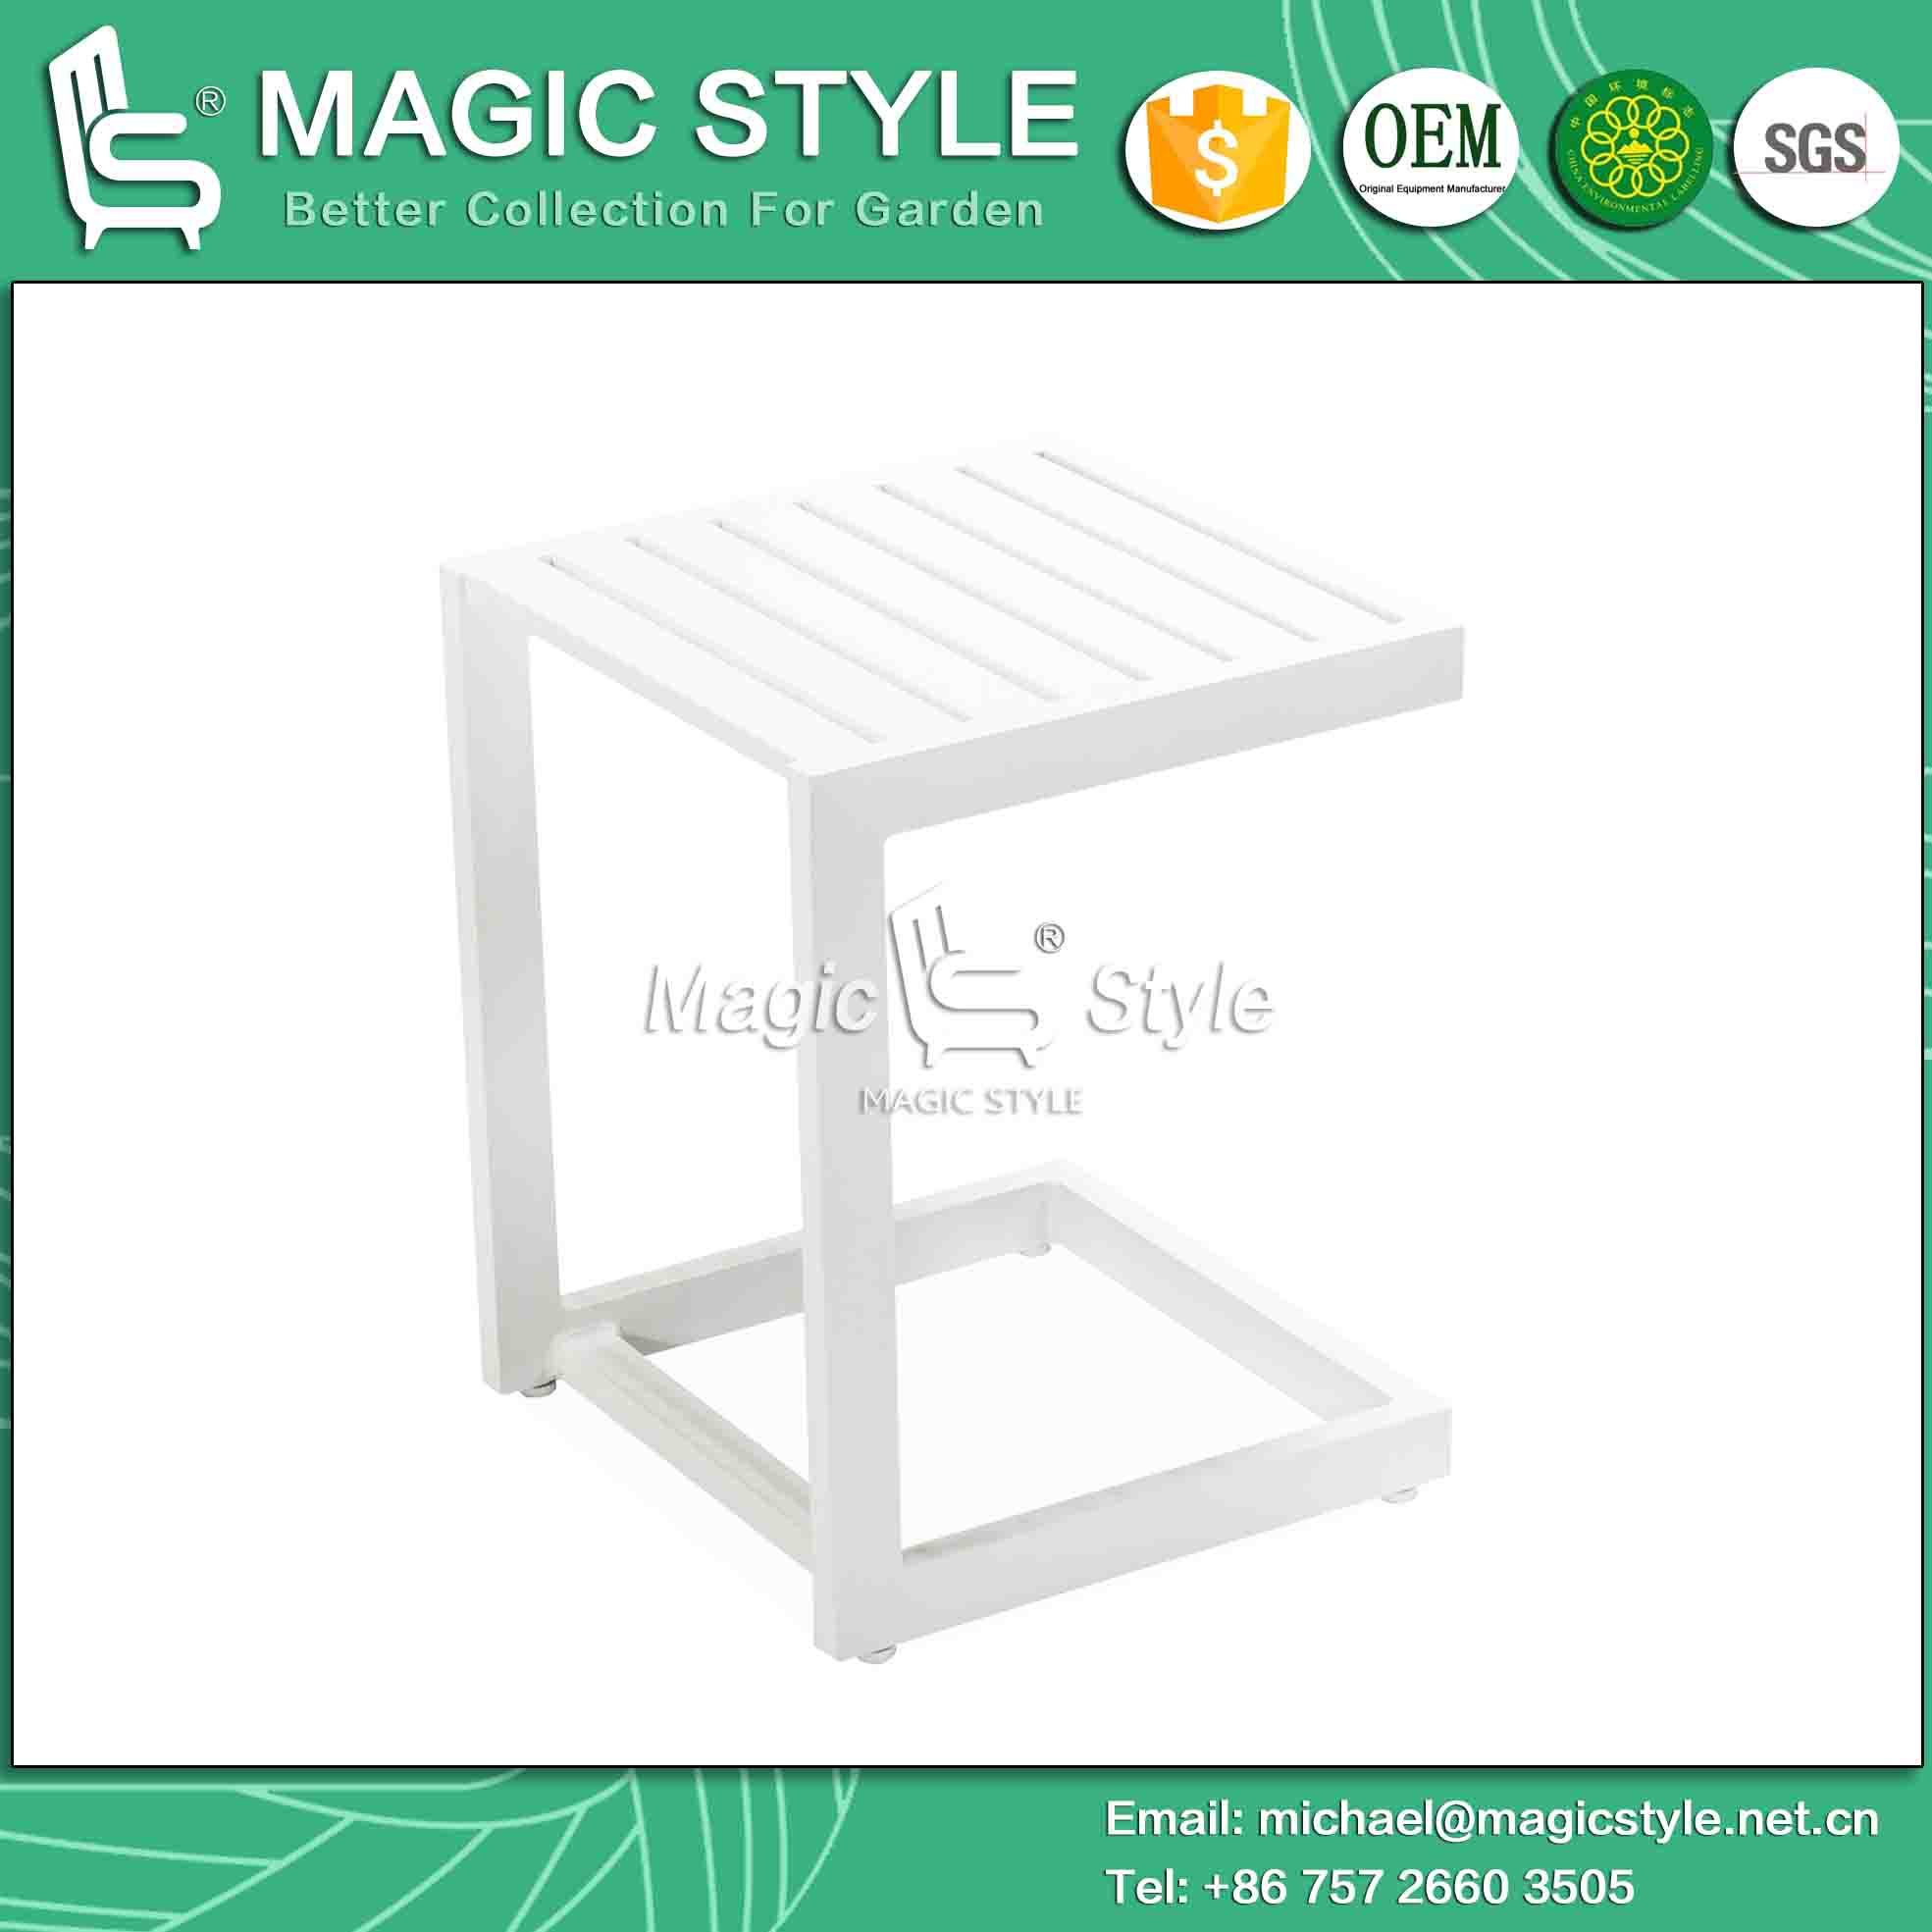 Outdoor Aluminum Side Table Garden Coffee Table Aluminum Coffee Table Square Tea Table Modern Side Table